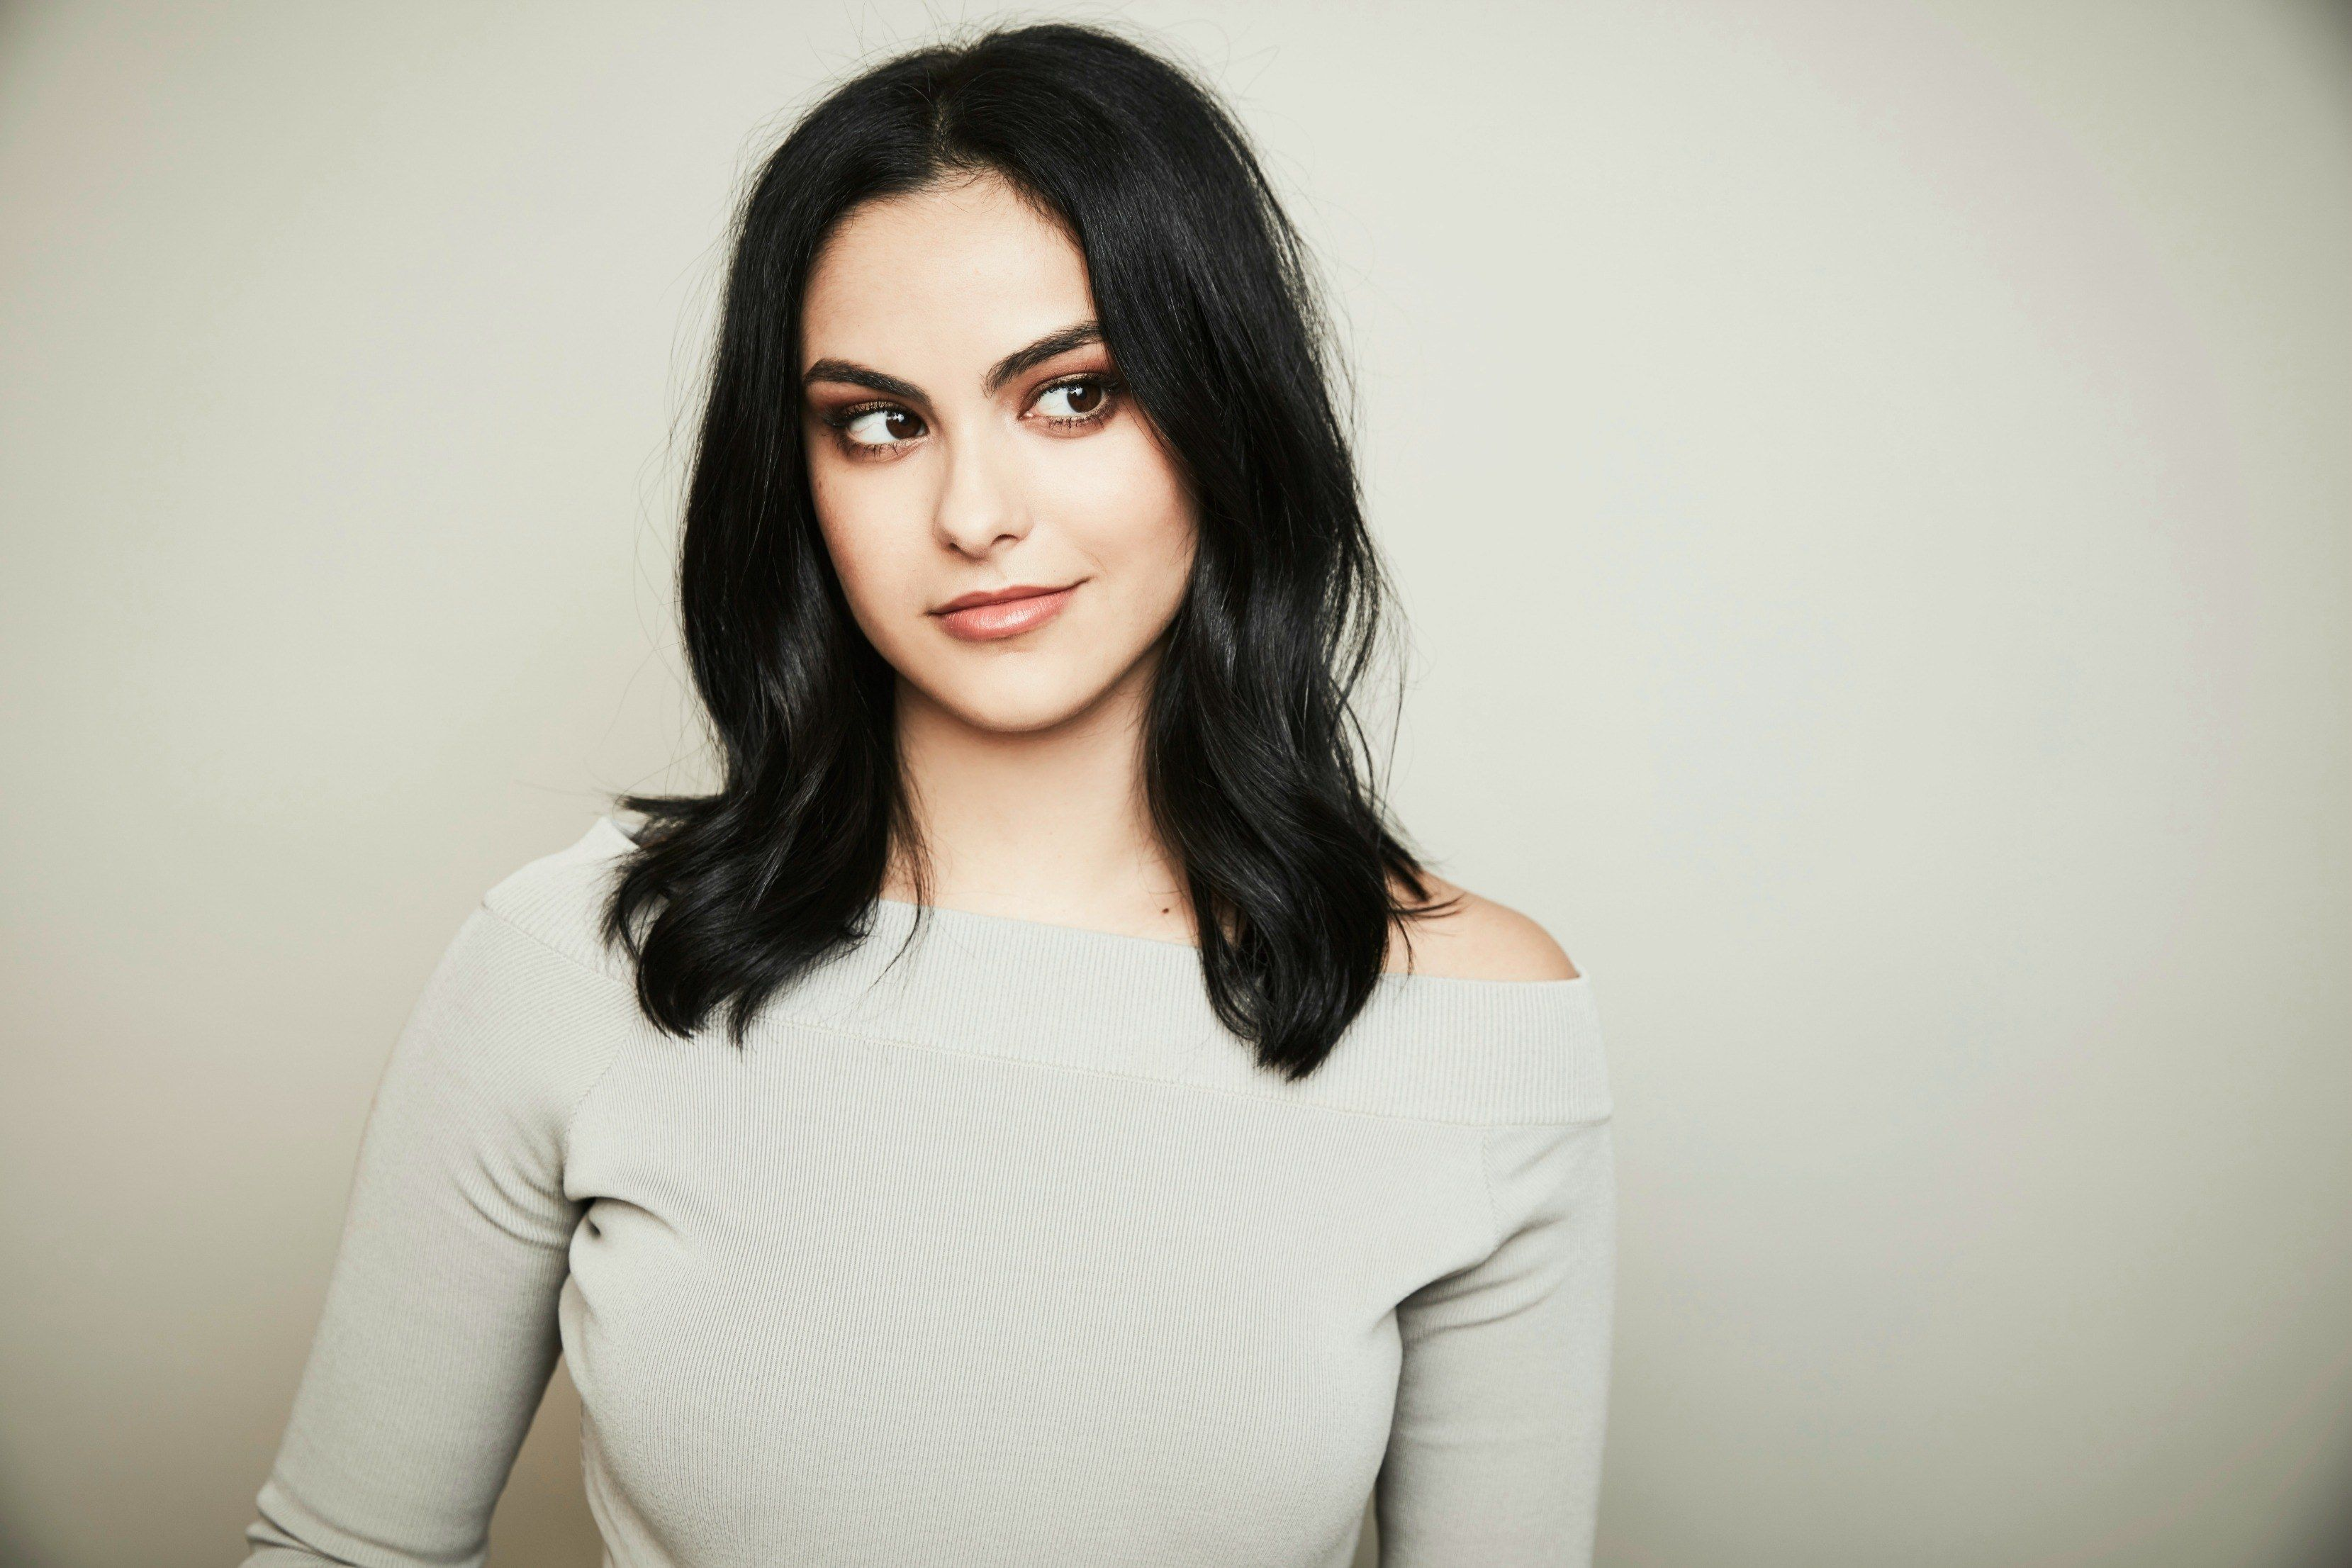 """'Riverdale' Star Camila Mendes: """"I Don't Want to Fake Who I Am to Fit a Stereotype"""""""